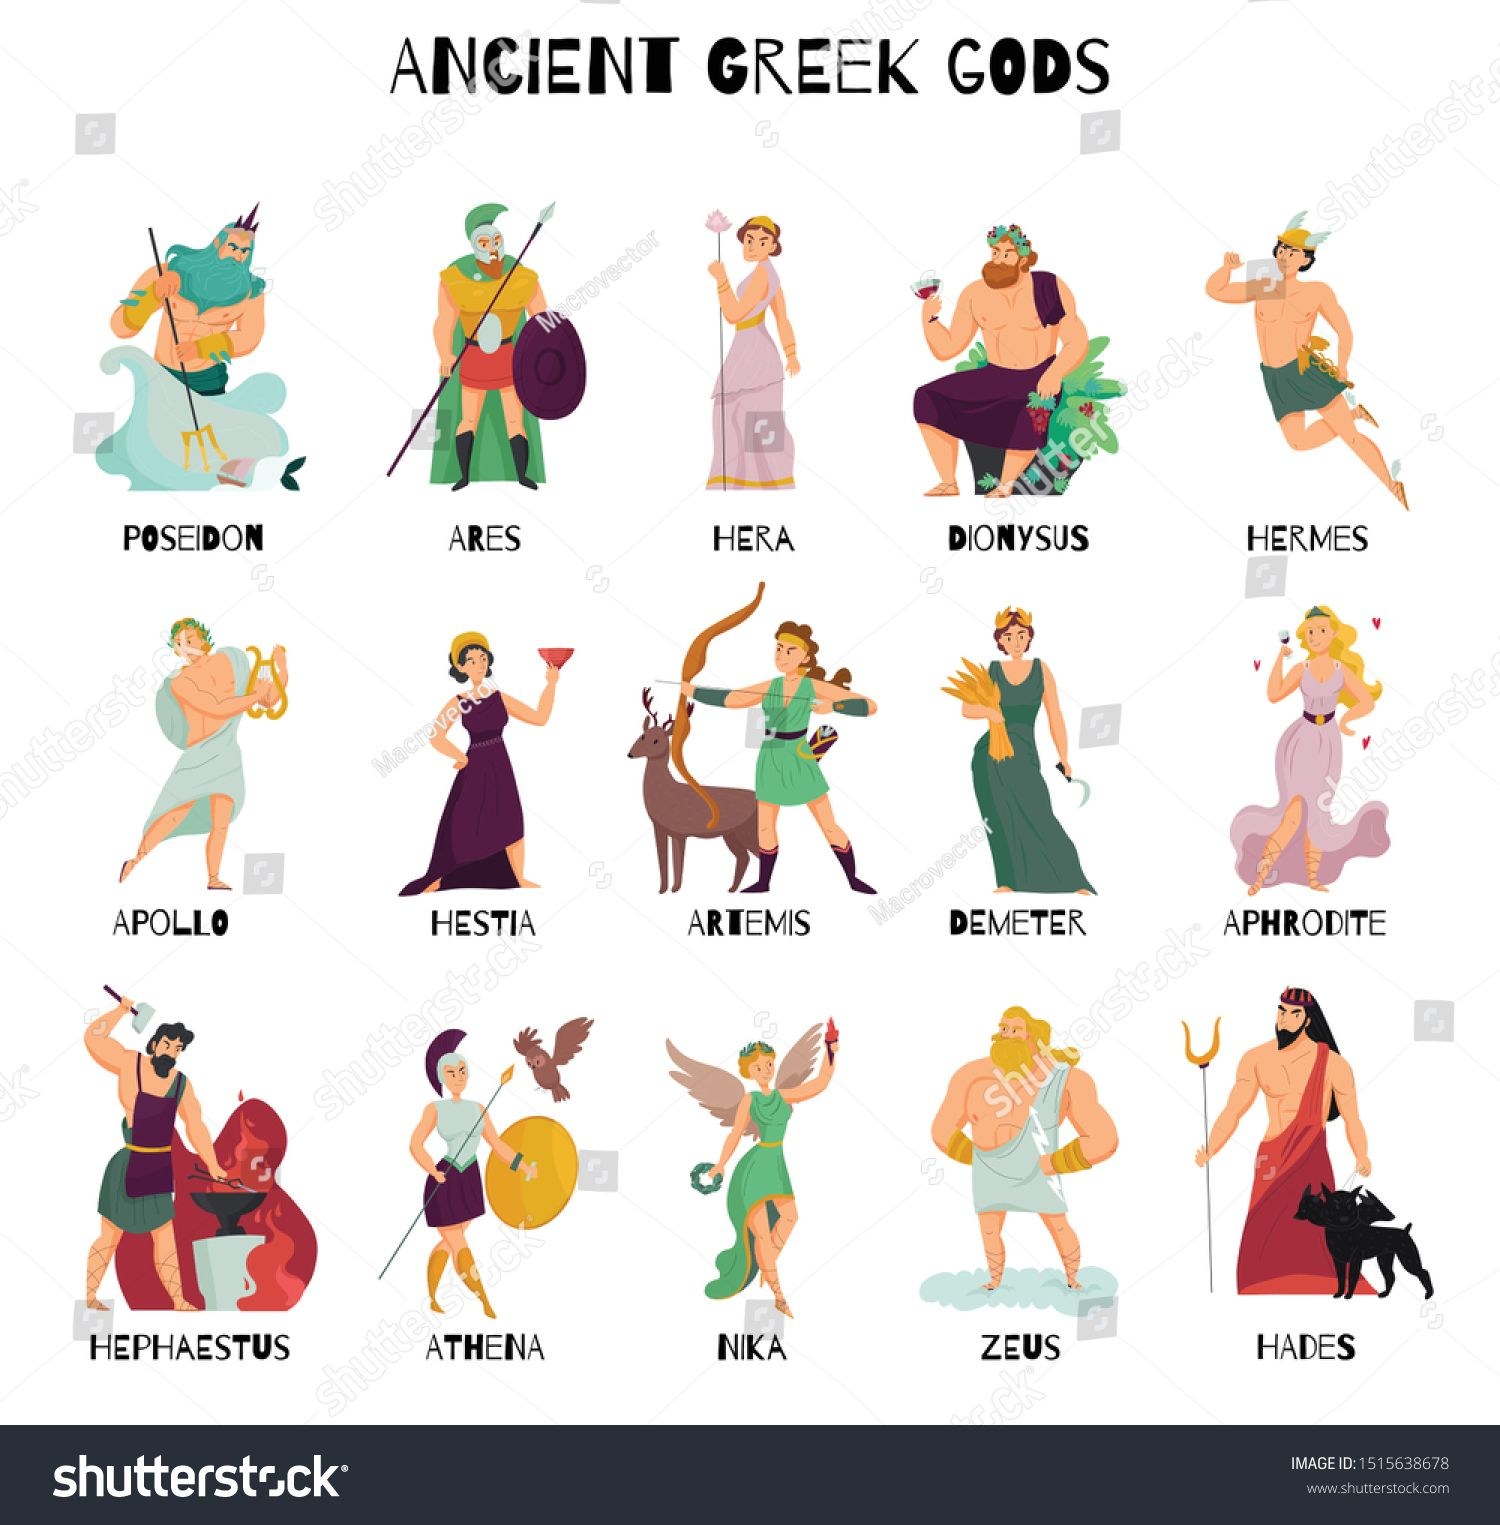 Colorful Cartoon Icons Set With Male And Female Ancient Greek Gods And Their Names Isolated On White Background Vector Illus Quran Book Book Cover Royalty Free